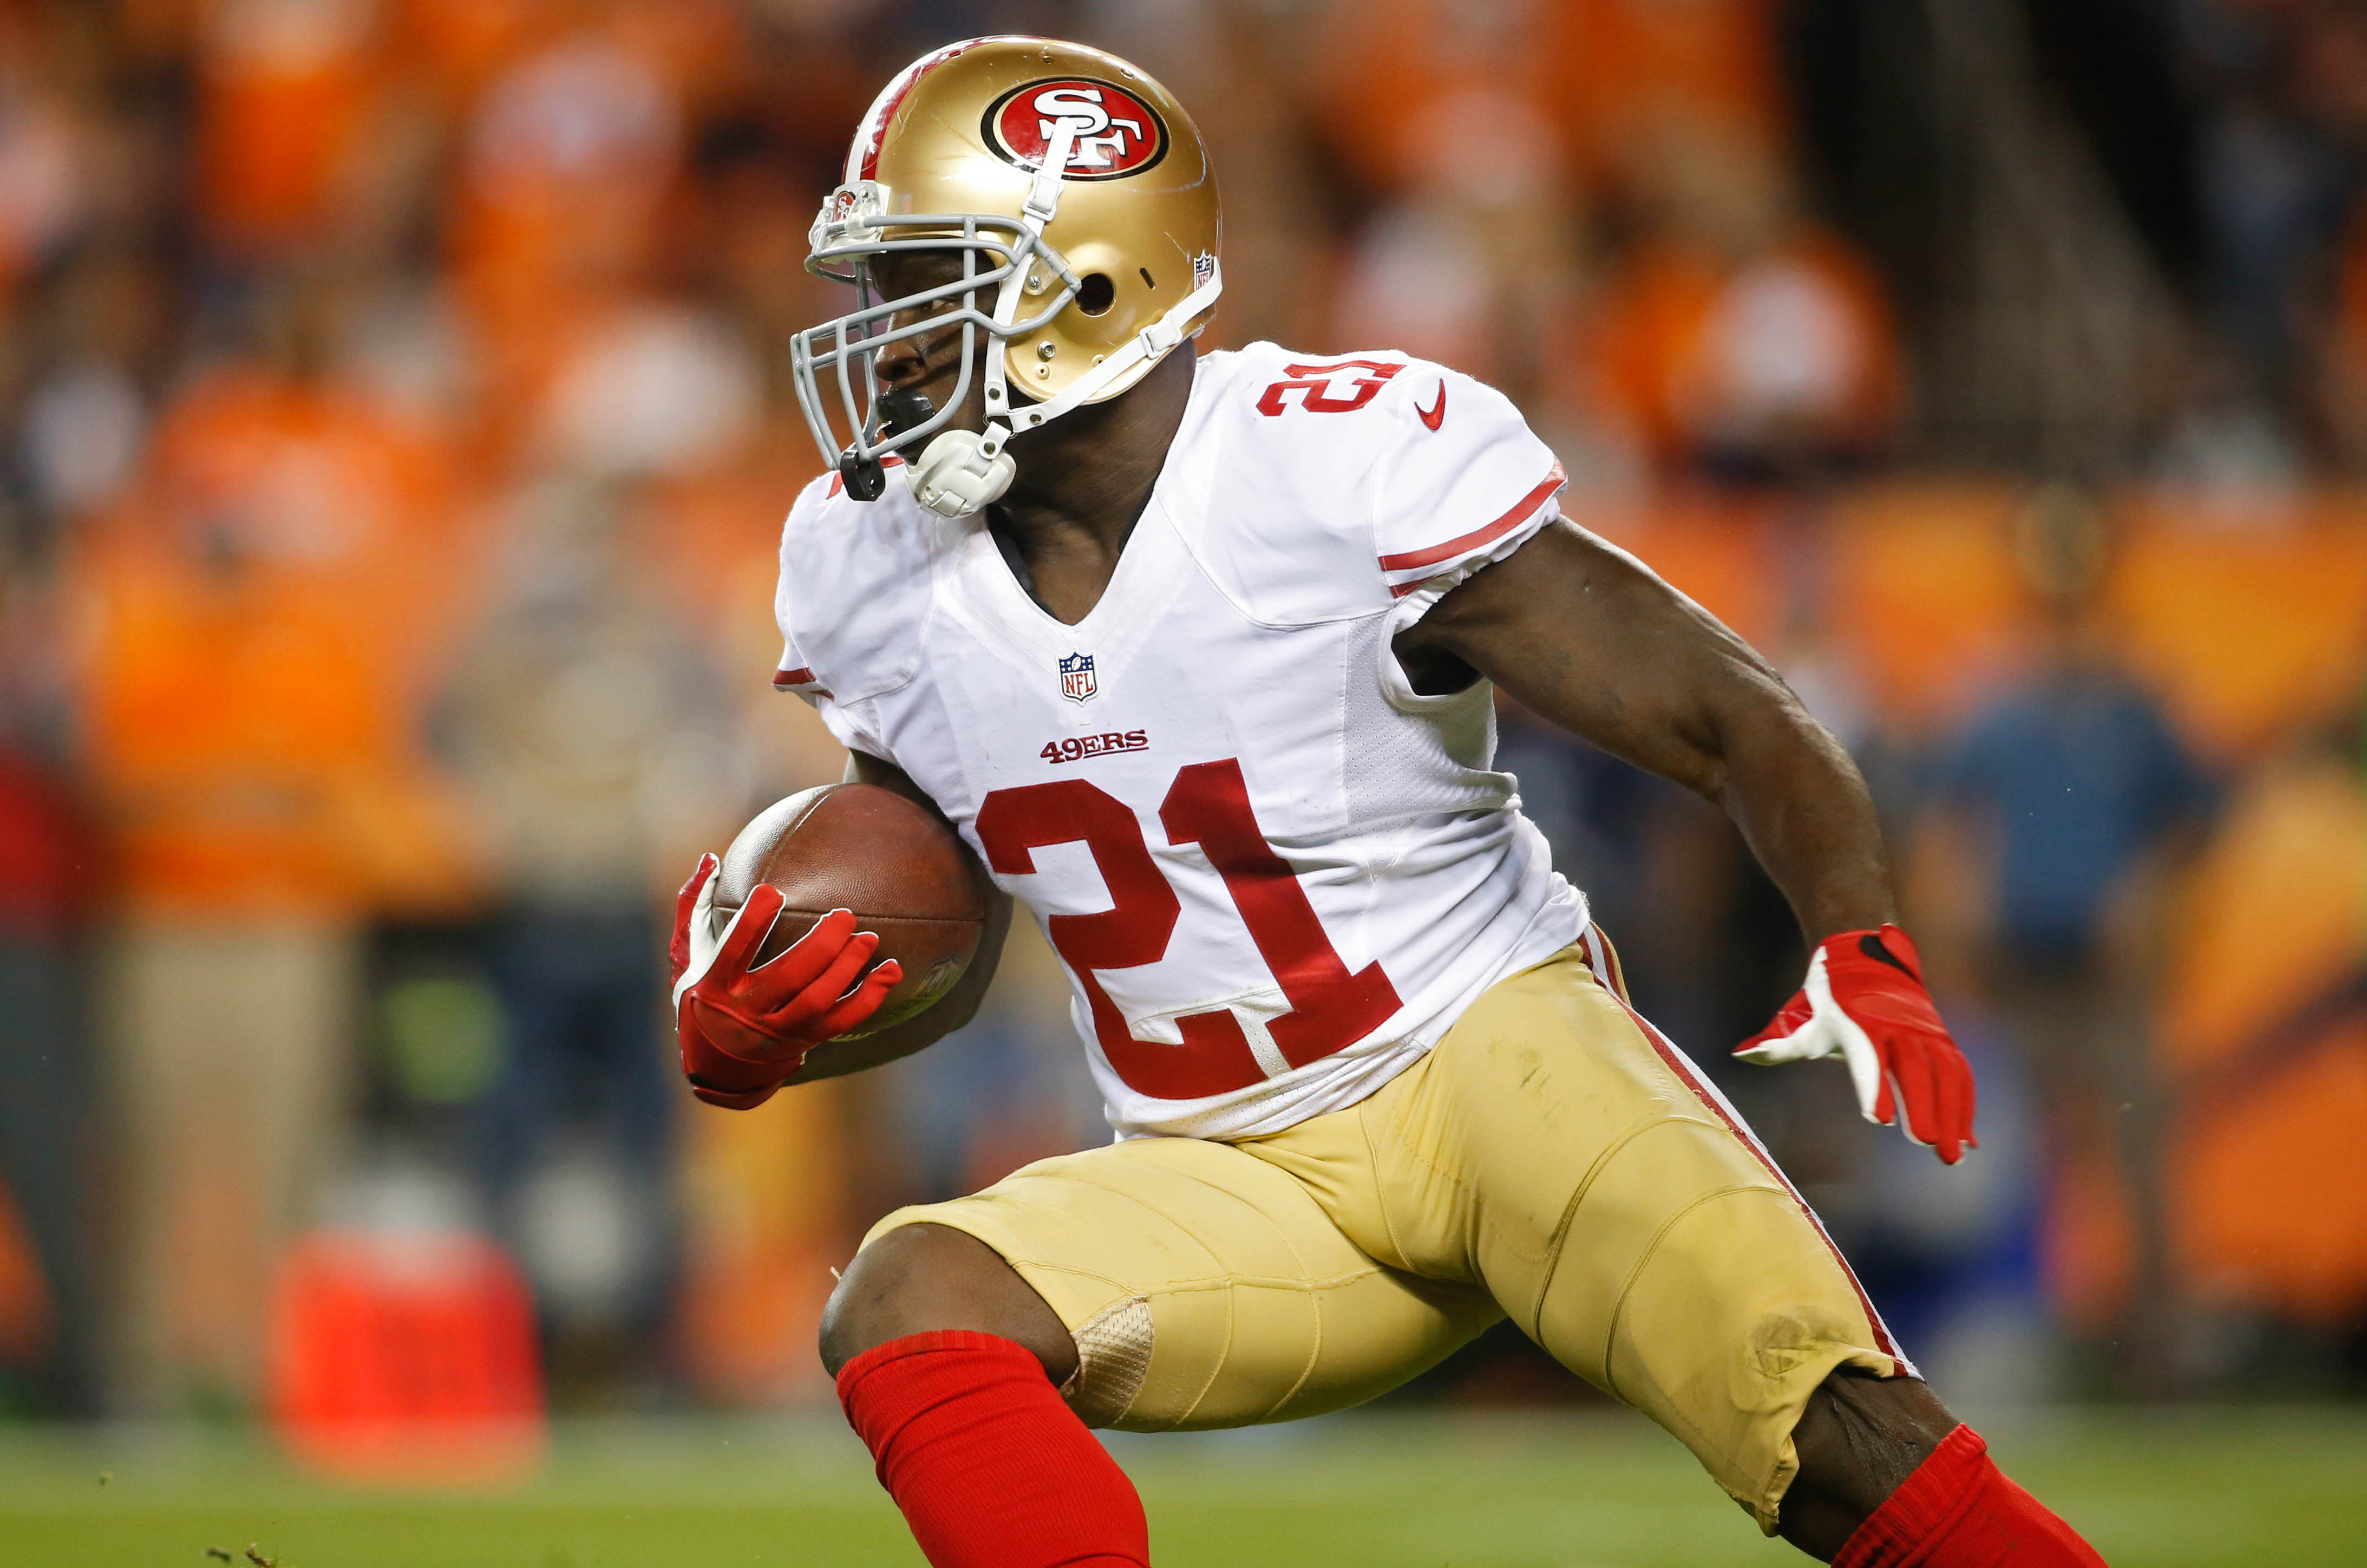 The 49ers are 6-0 when Gore carries the rock at least 15 times. So why has he only had that many carries 6 times this season?